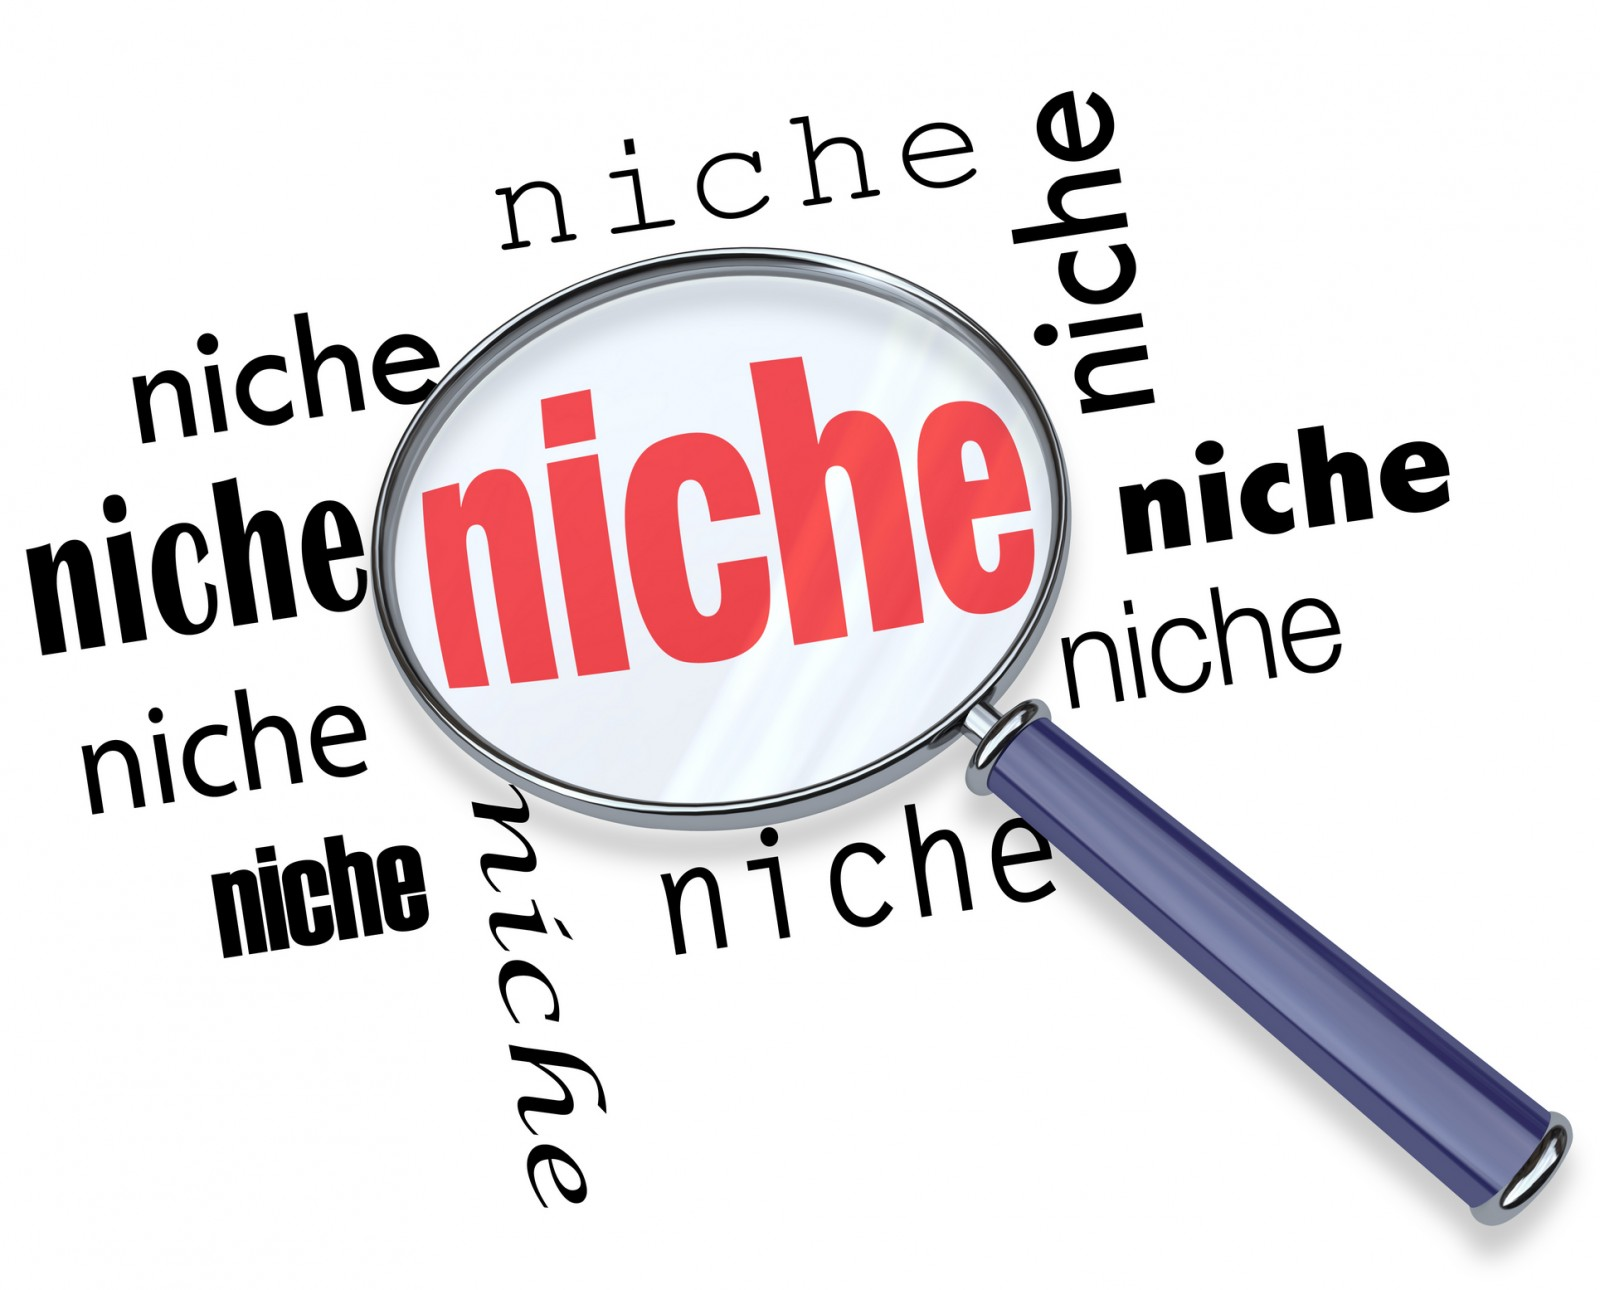 Niche Marketing Strategy Is Crucial For SMEs' Success, New Study Says